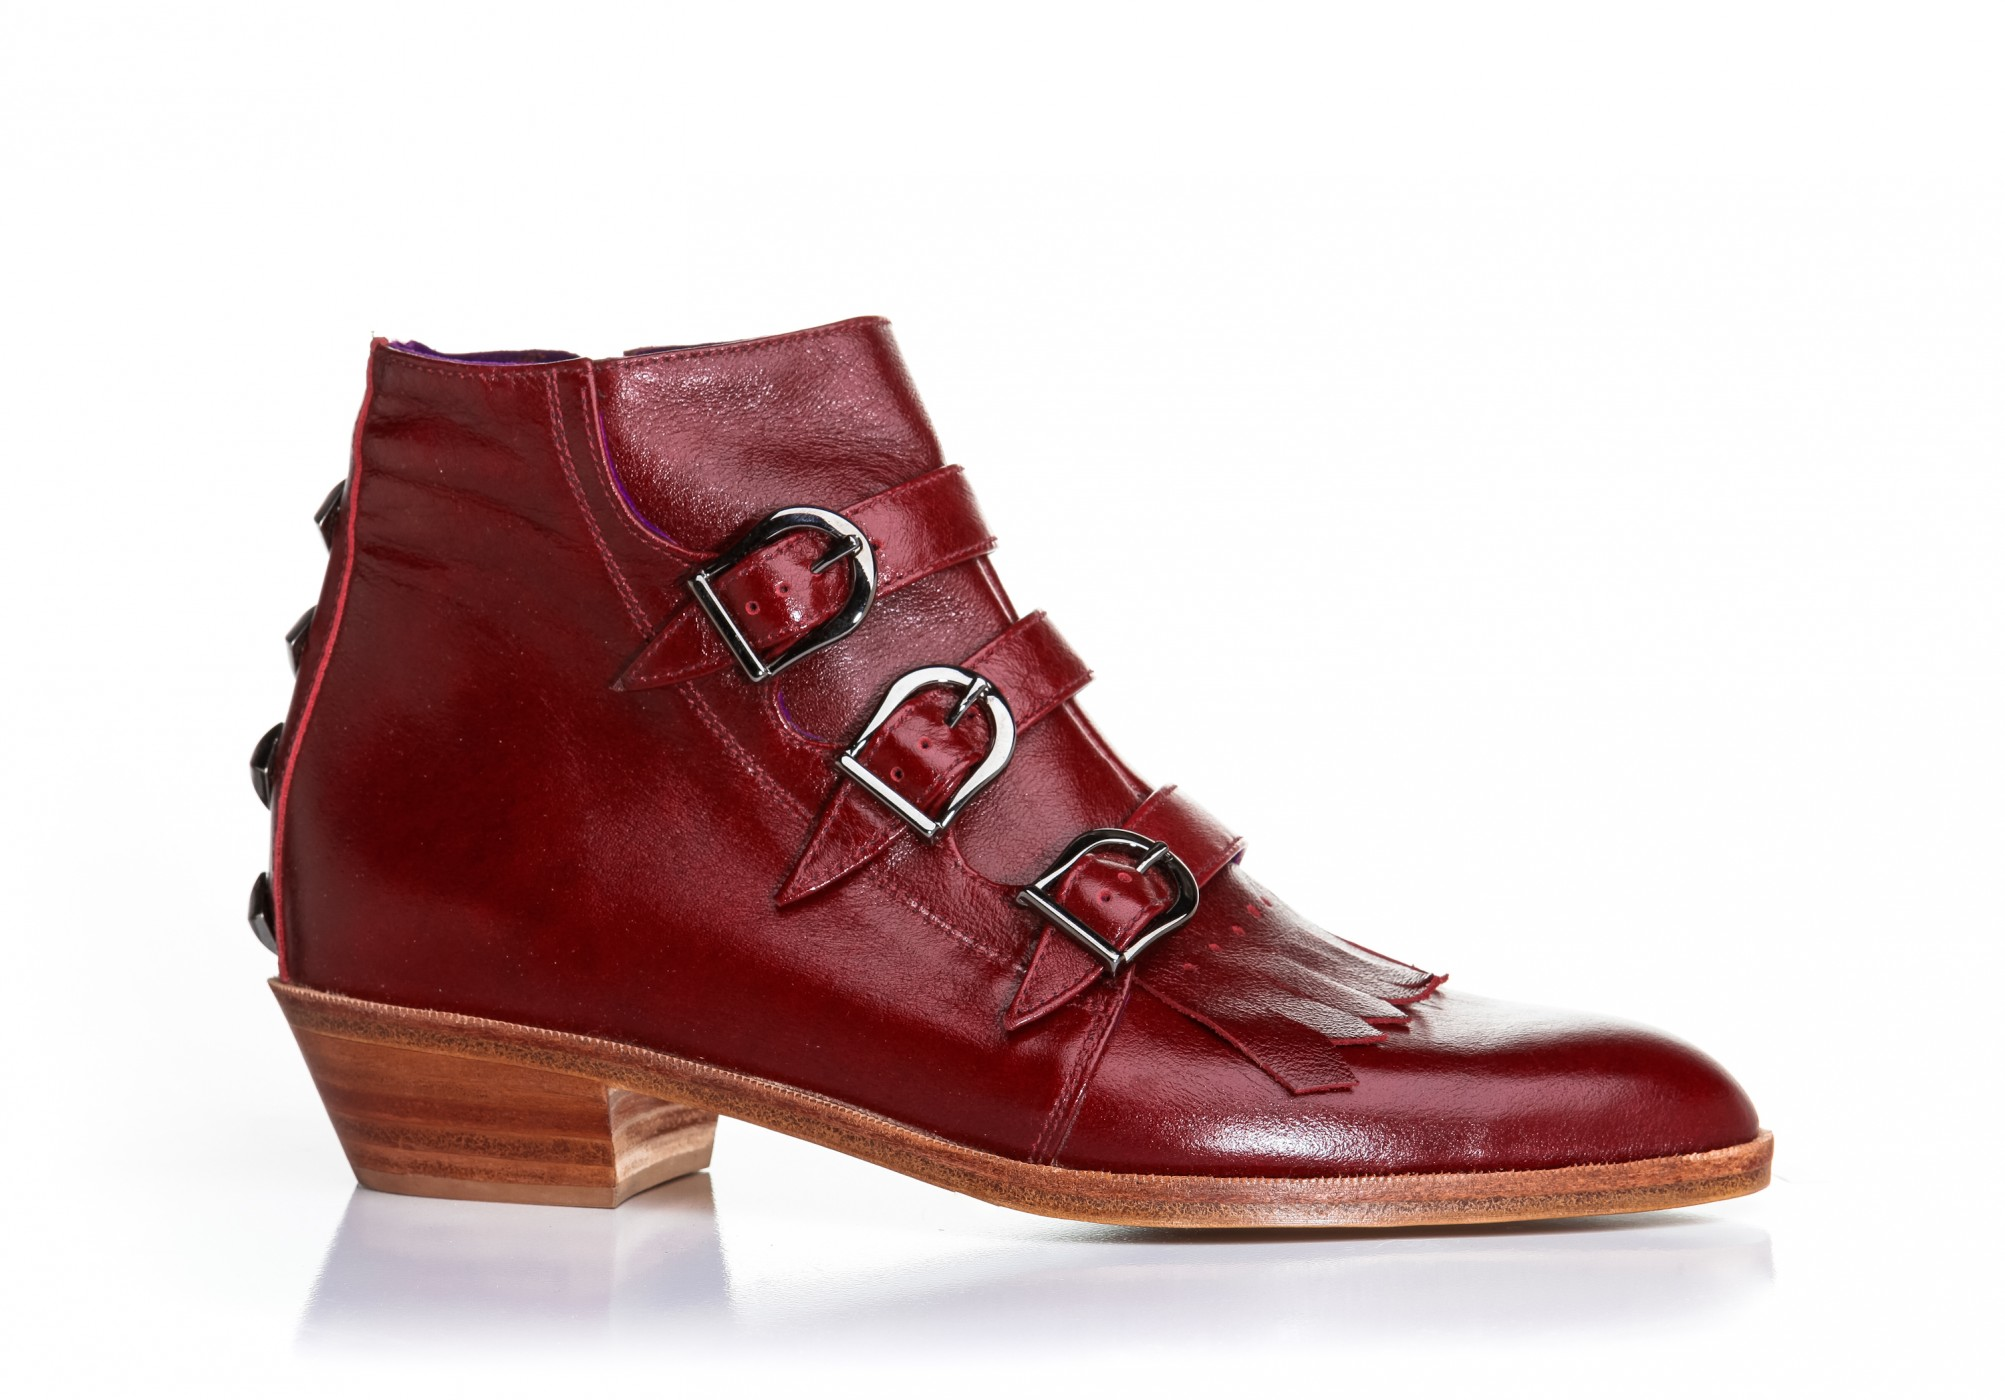 Shut_Up_I_Love_This_Modern_Vice_Jett_Boot_Oxblood